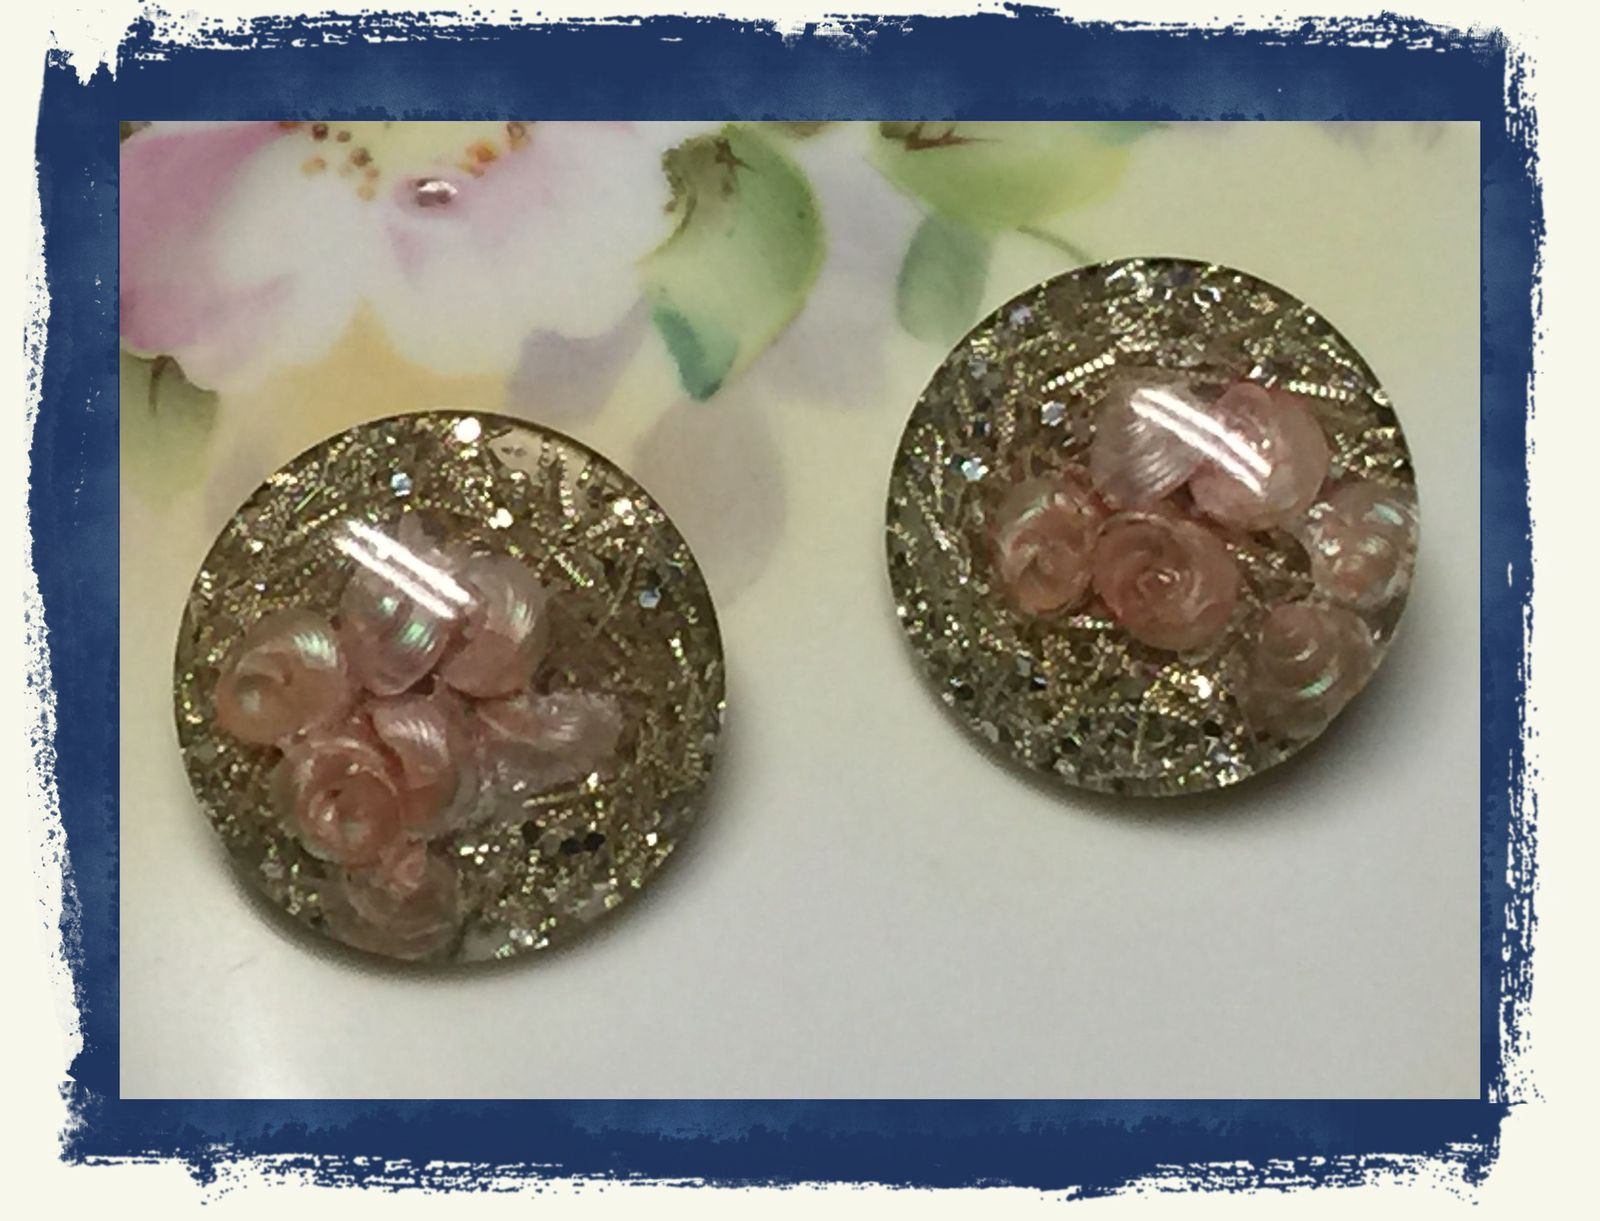 VTG 40s Pink Flowers Gold Flake Silver Glitter 3D Acrylic Round Clip On Earrings